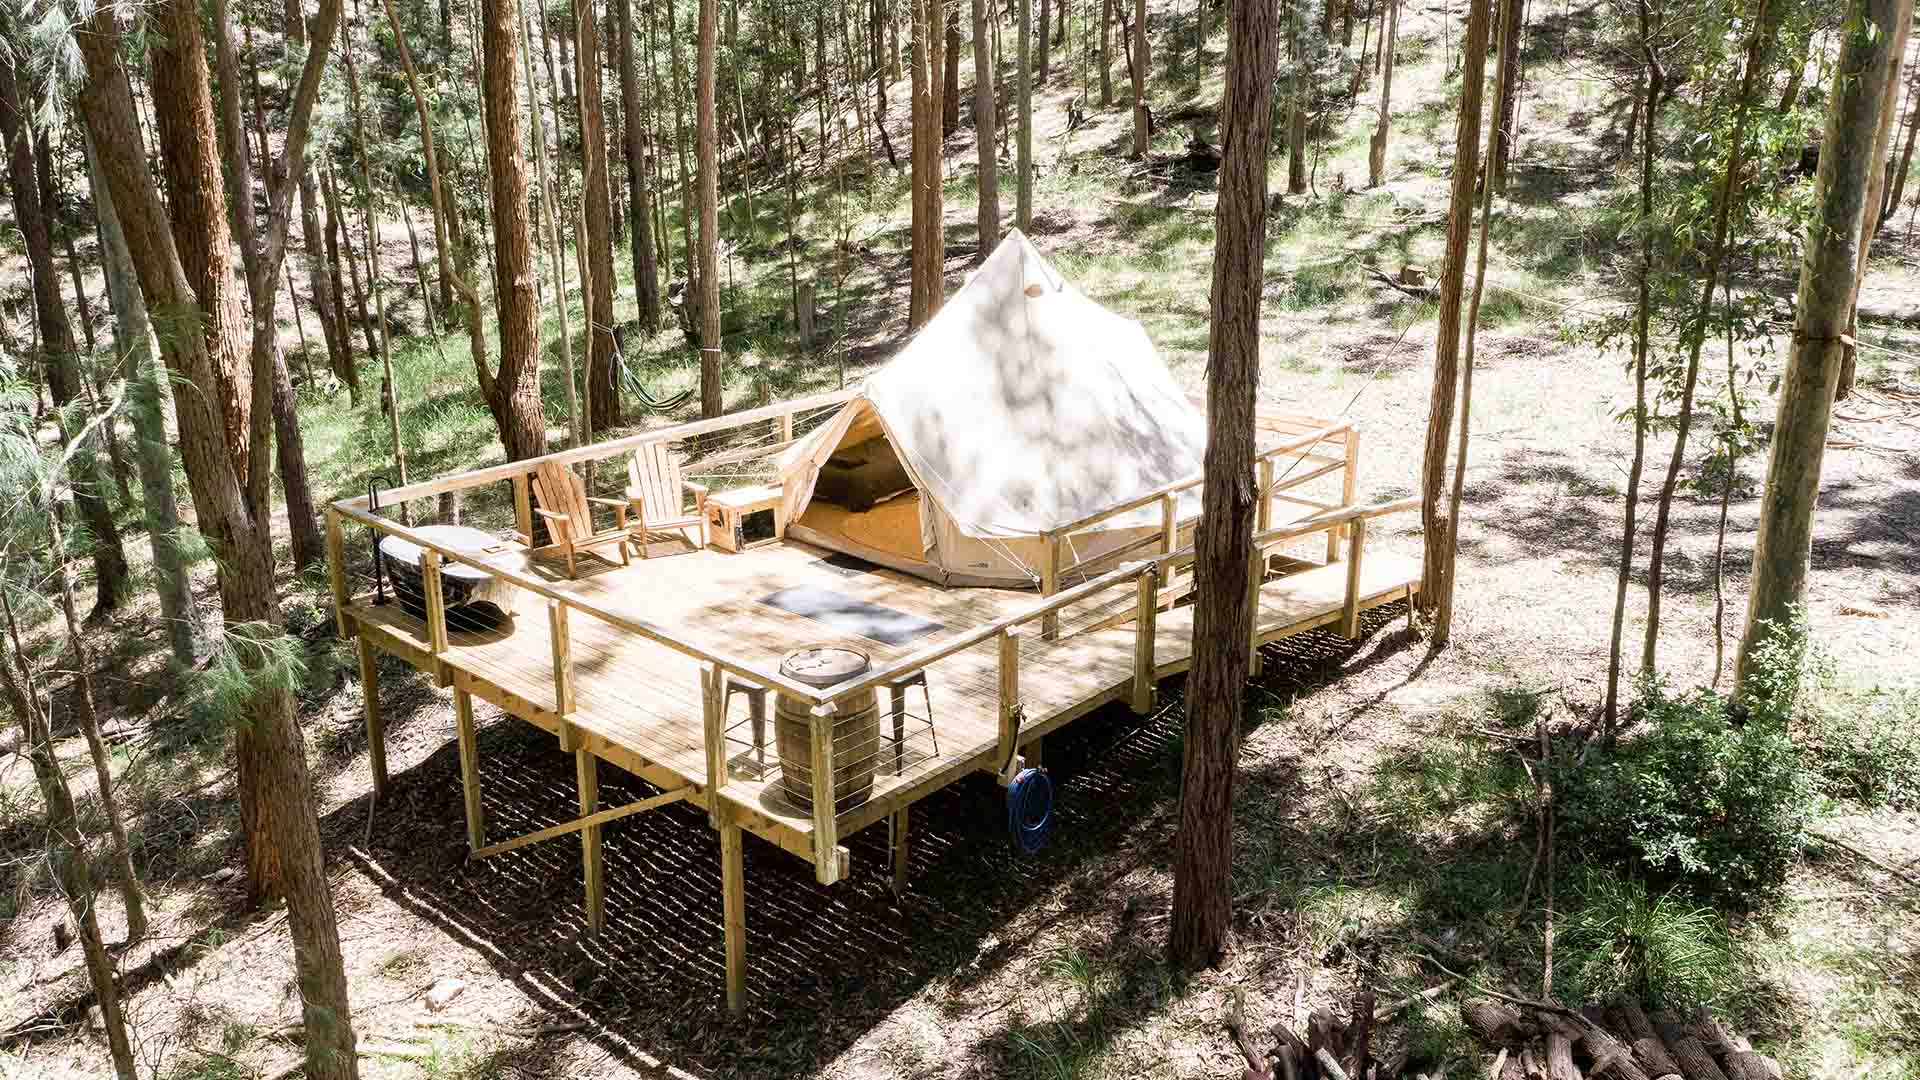 This Scenic New NSW Bushland Glamping Site Comes with Outdoor Bathtubs and a Games House